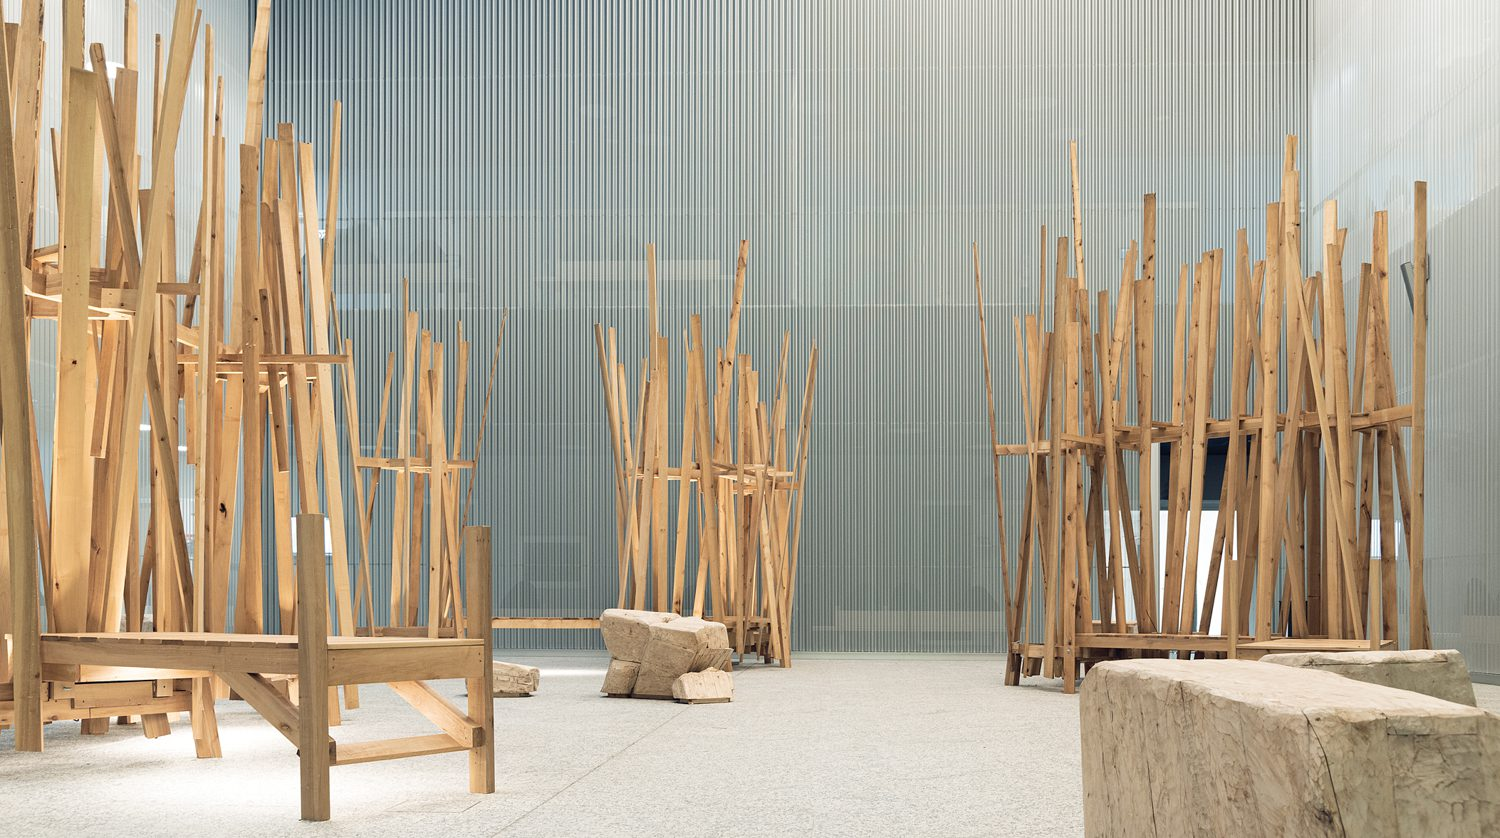 In a courtyard off the atrium, Tapper's aspen and alder sculptures provide seating; photography: Hannu Rytky.